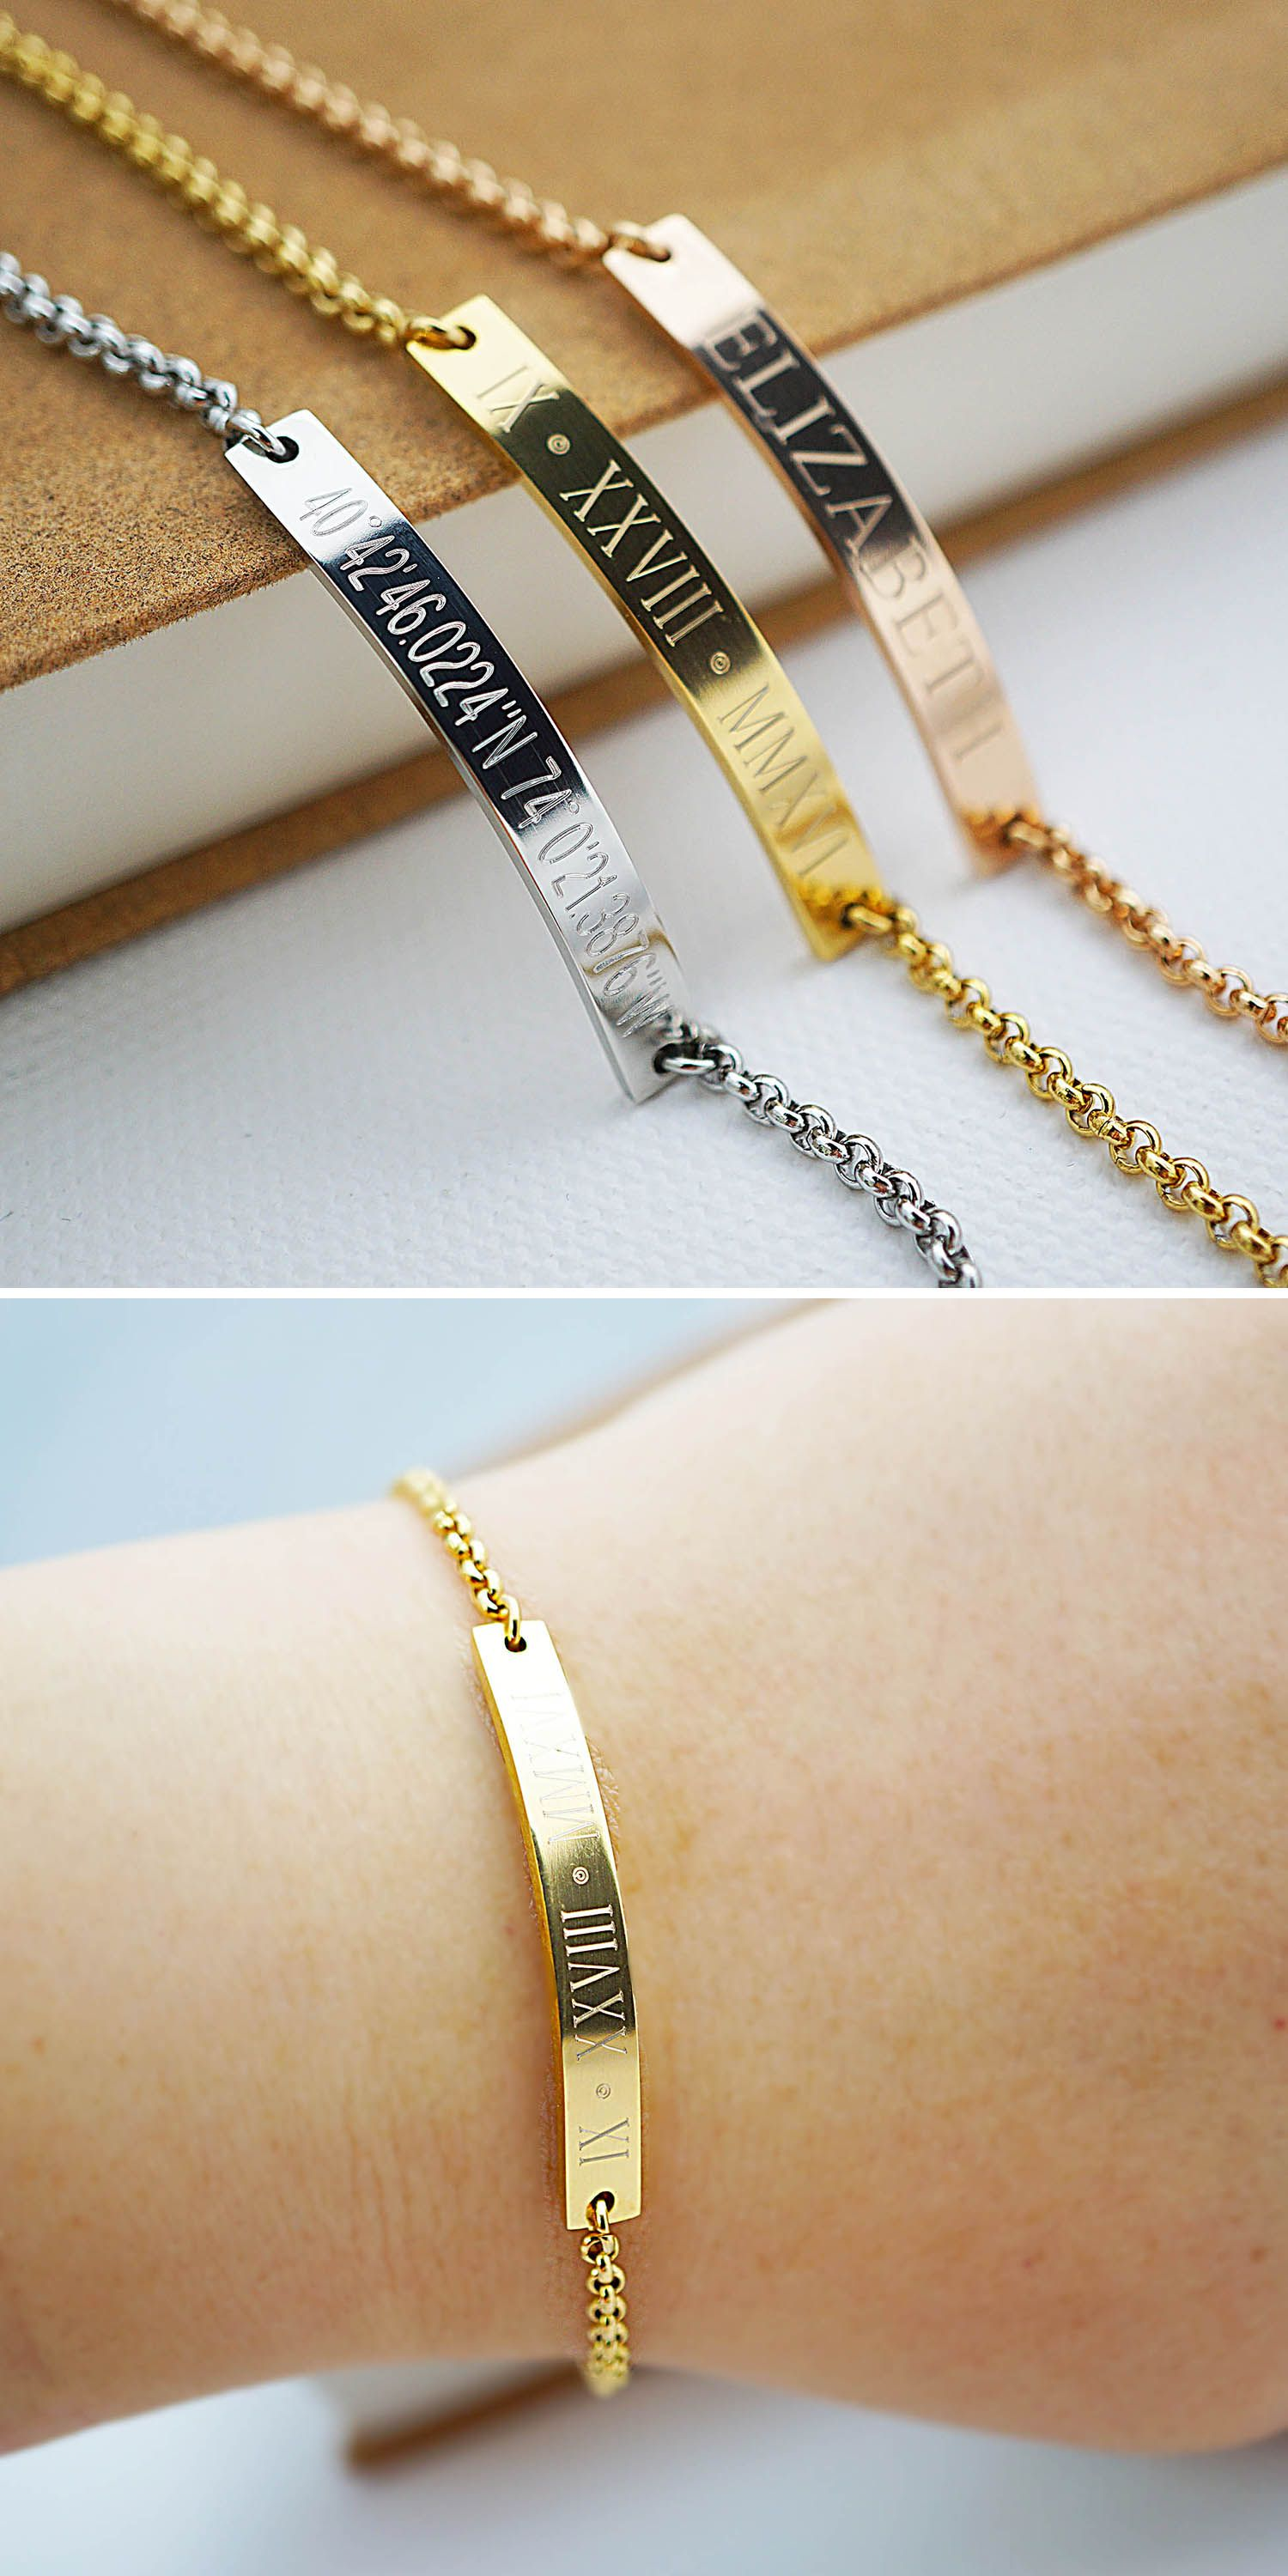 bangles personalized bangle ethical bracelet bracelets soko iga products gifts handmade cuff